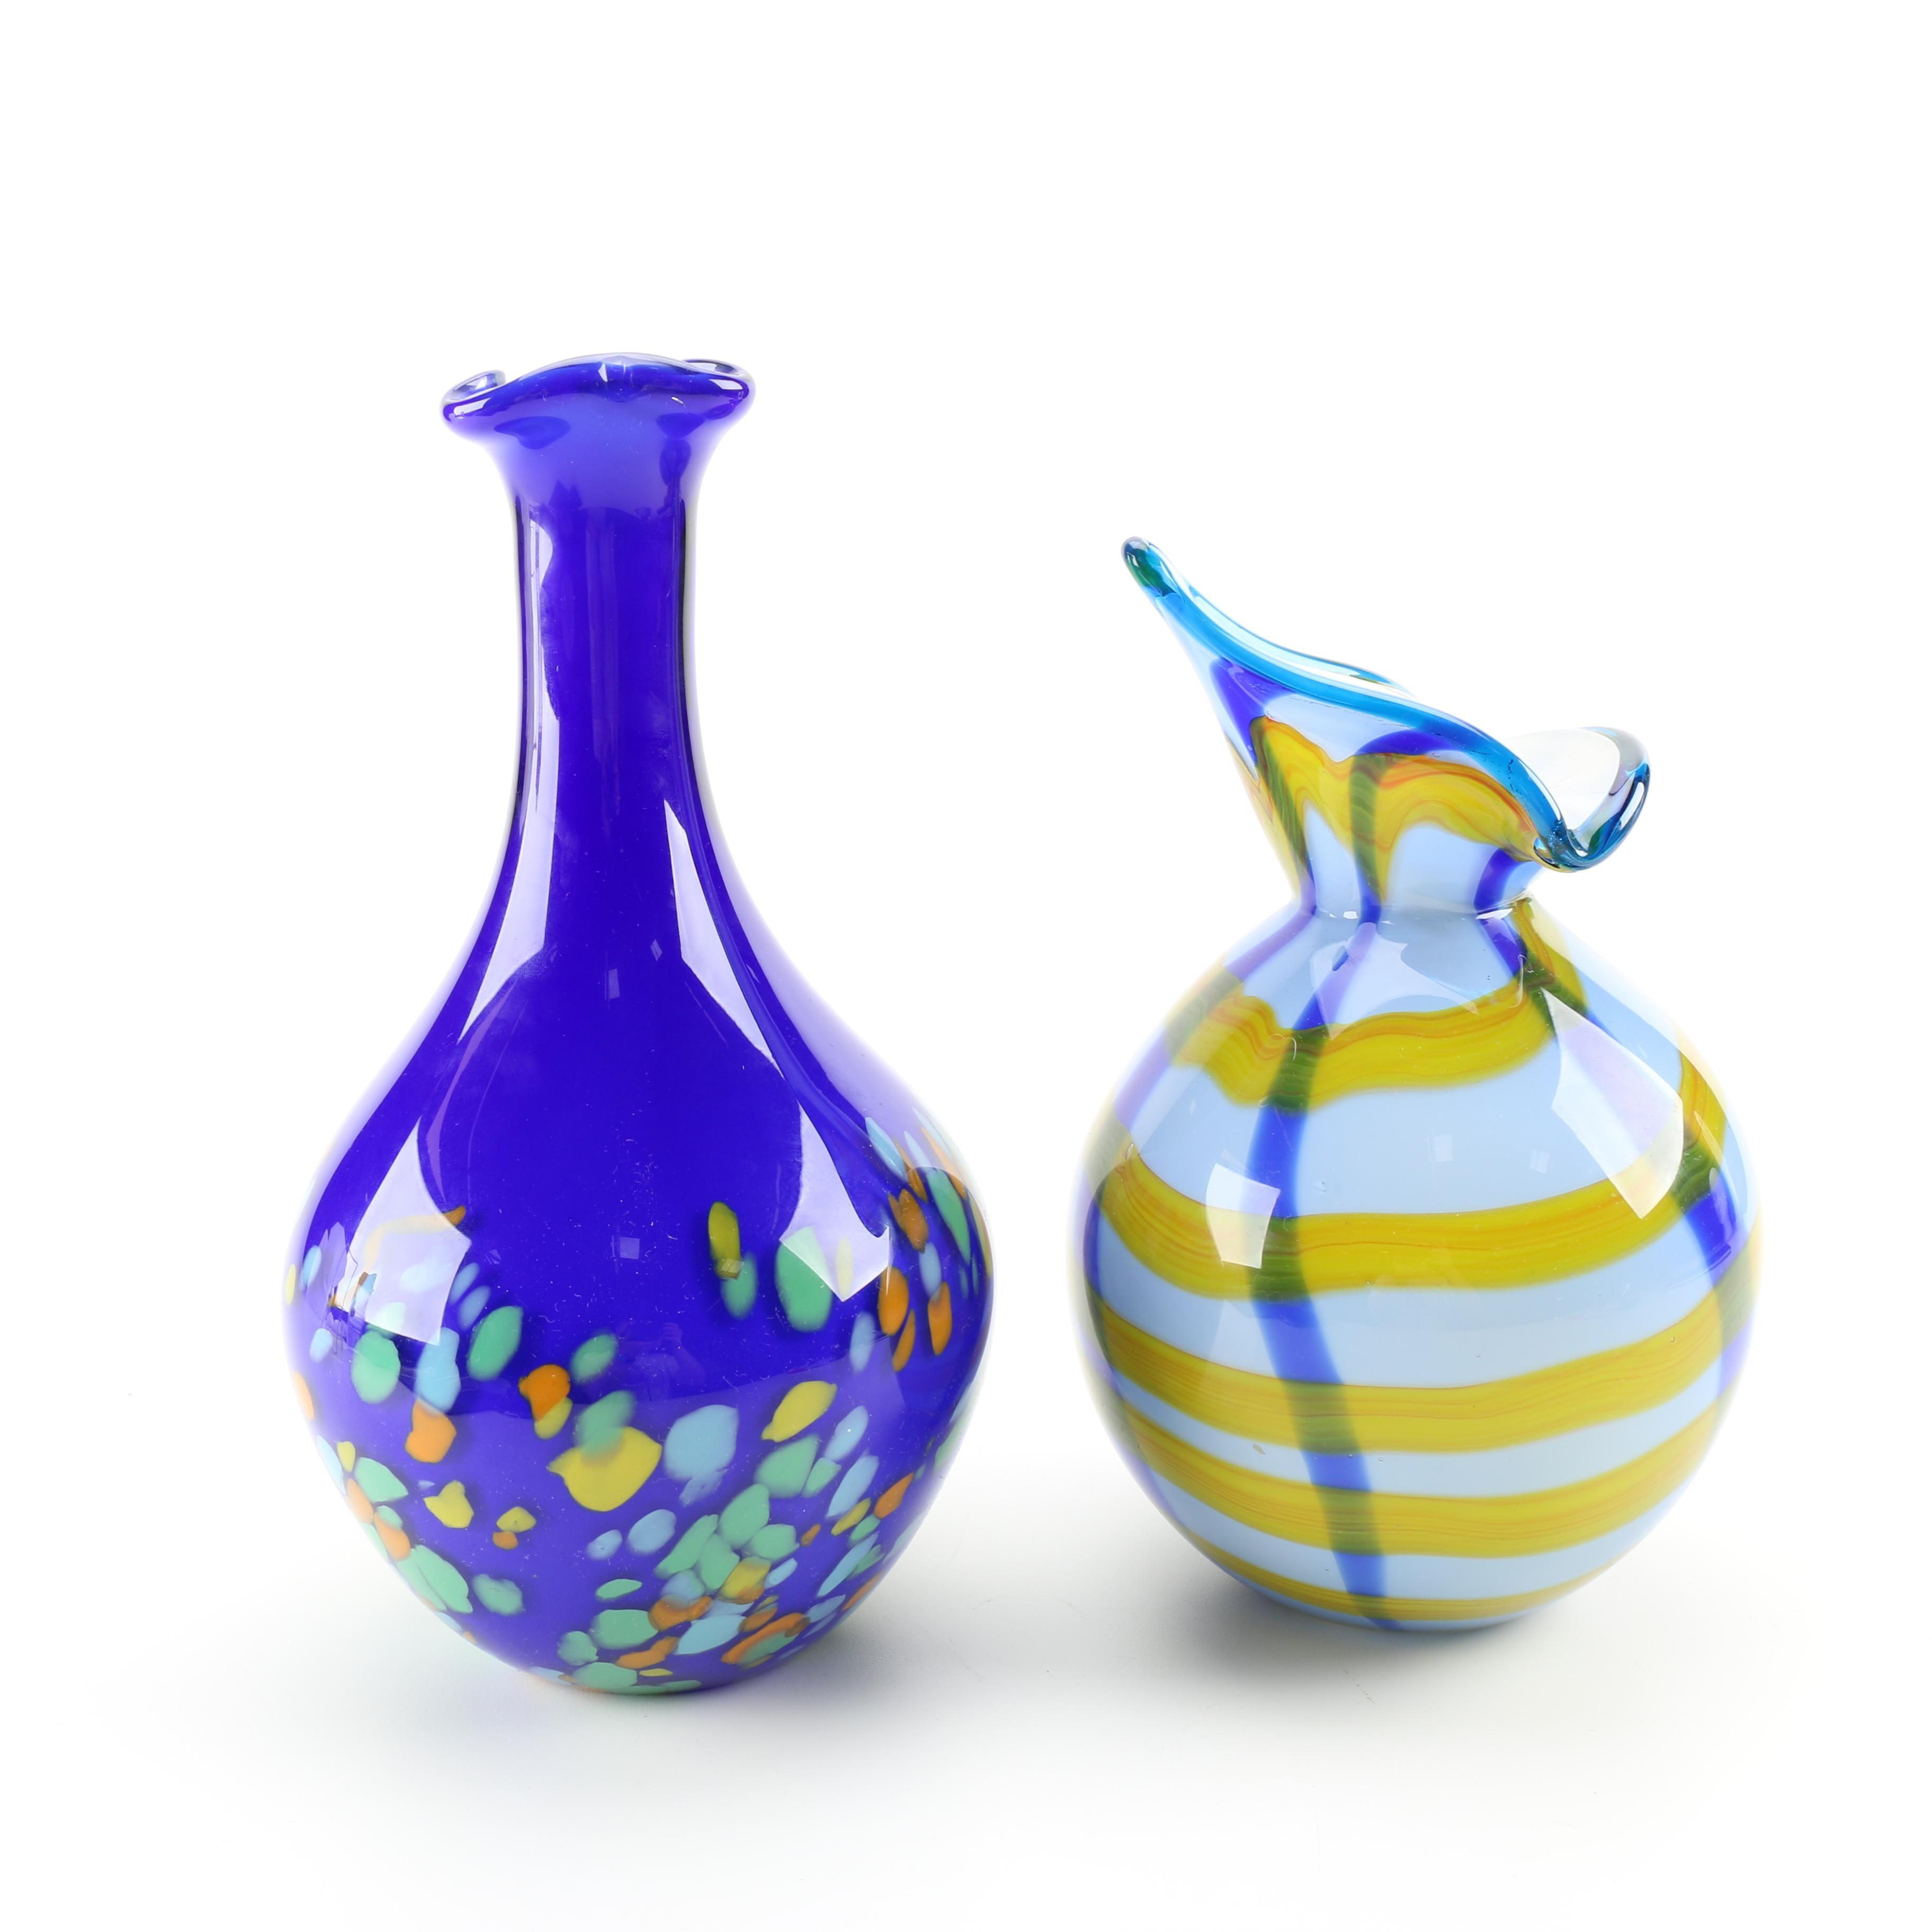 Pair of Blown Glass Vases